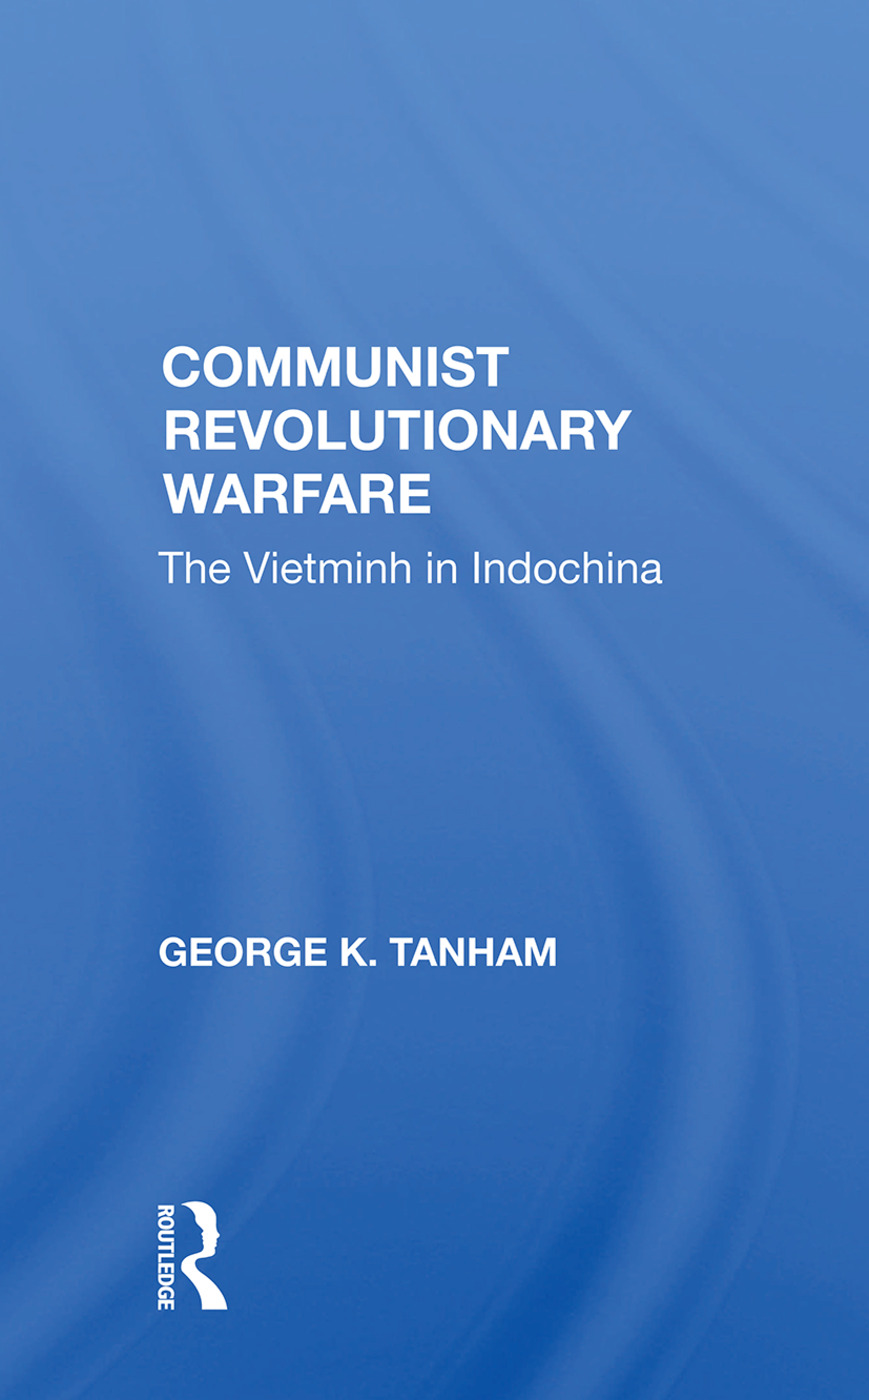 Communist Revolutionary Warfare: The Vietminh in Indochina book cover